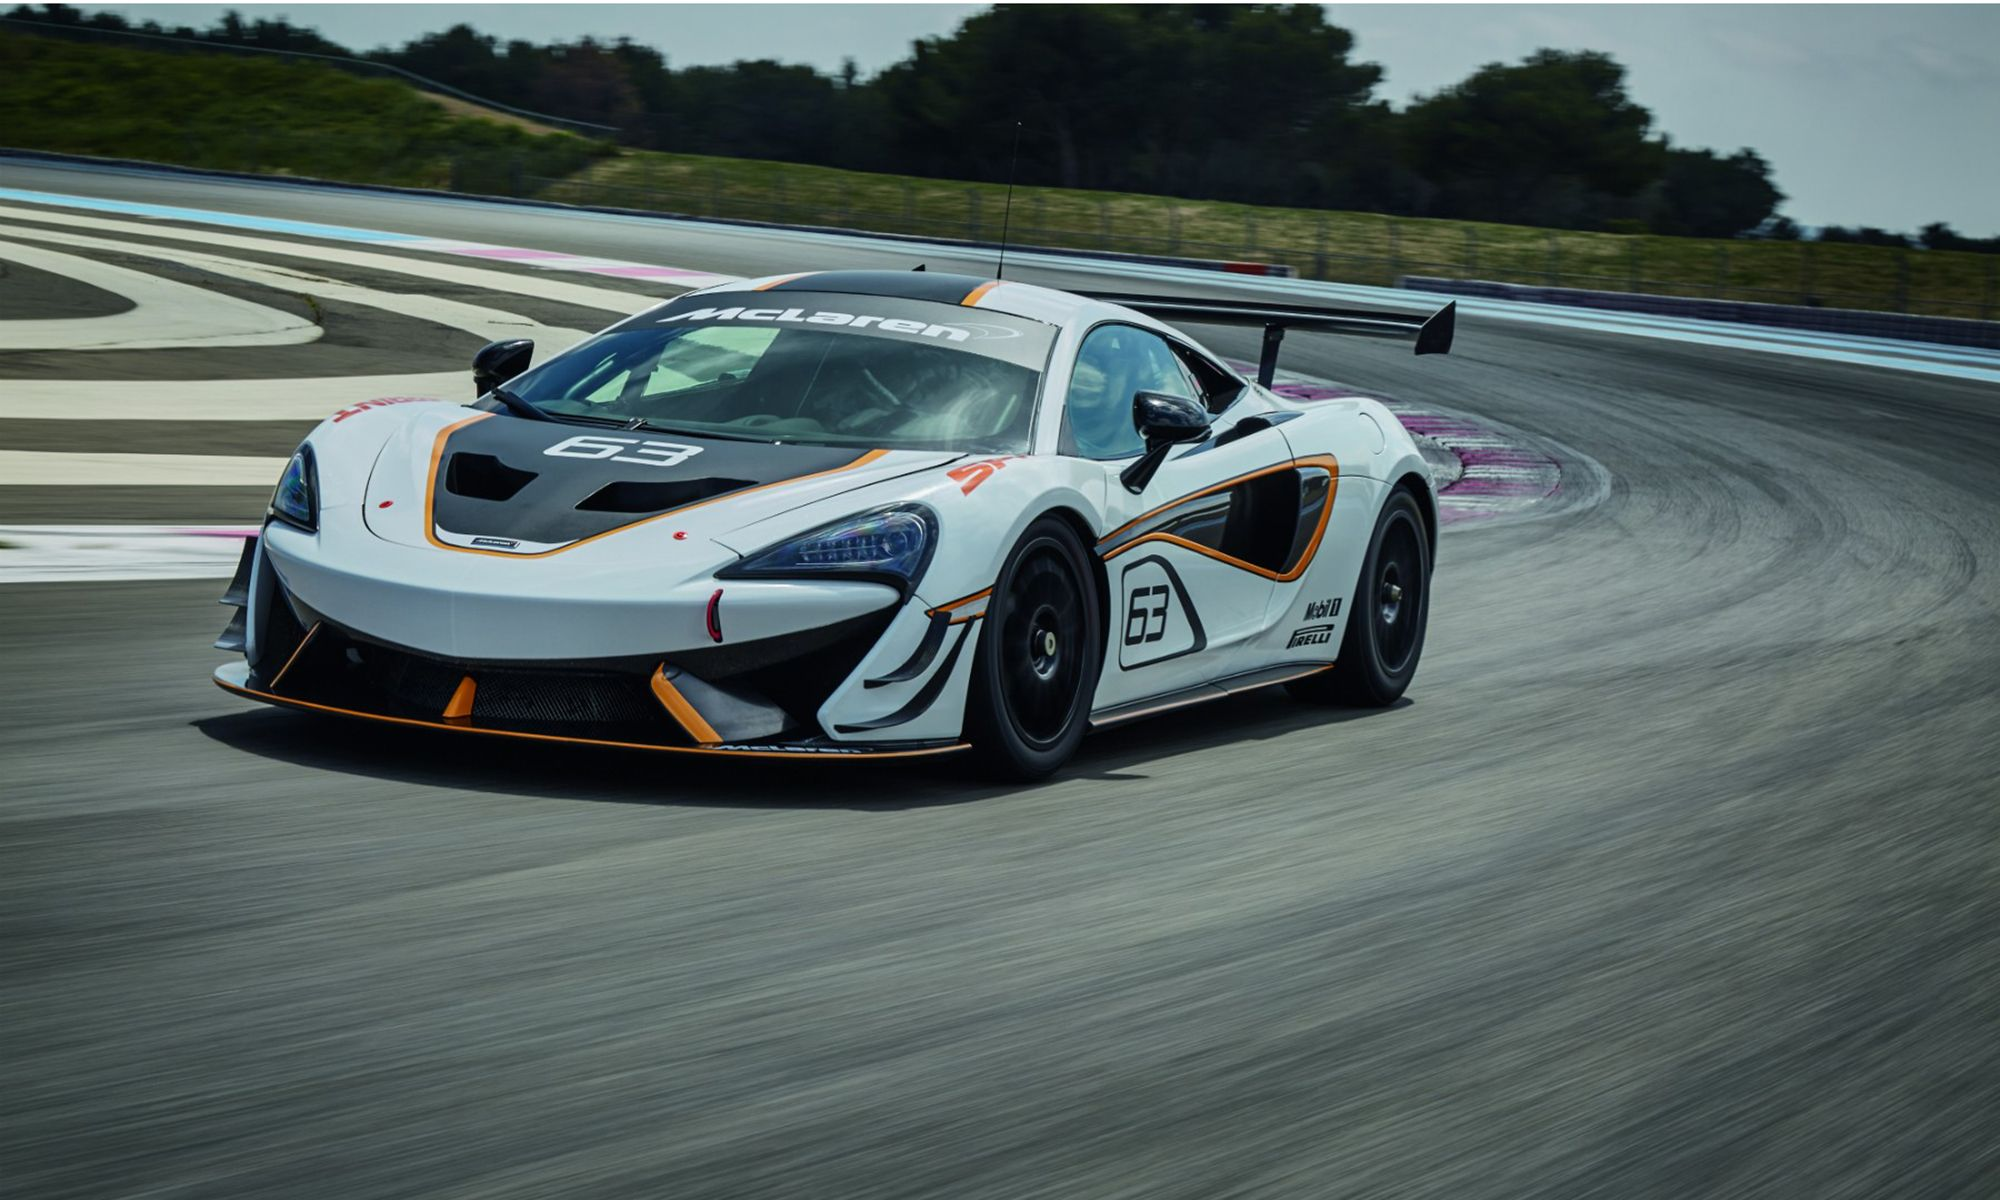 The McLaren 507 S Sprint Races into View